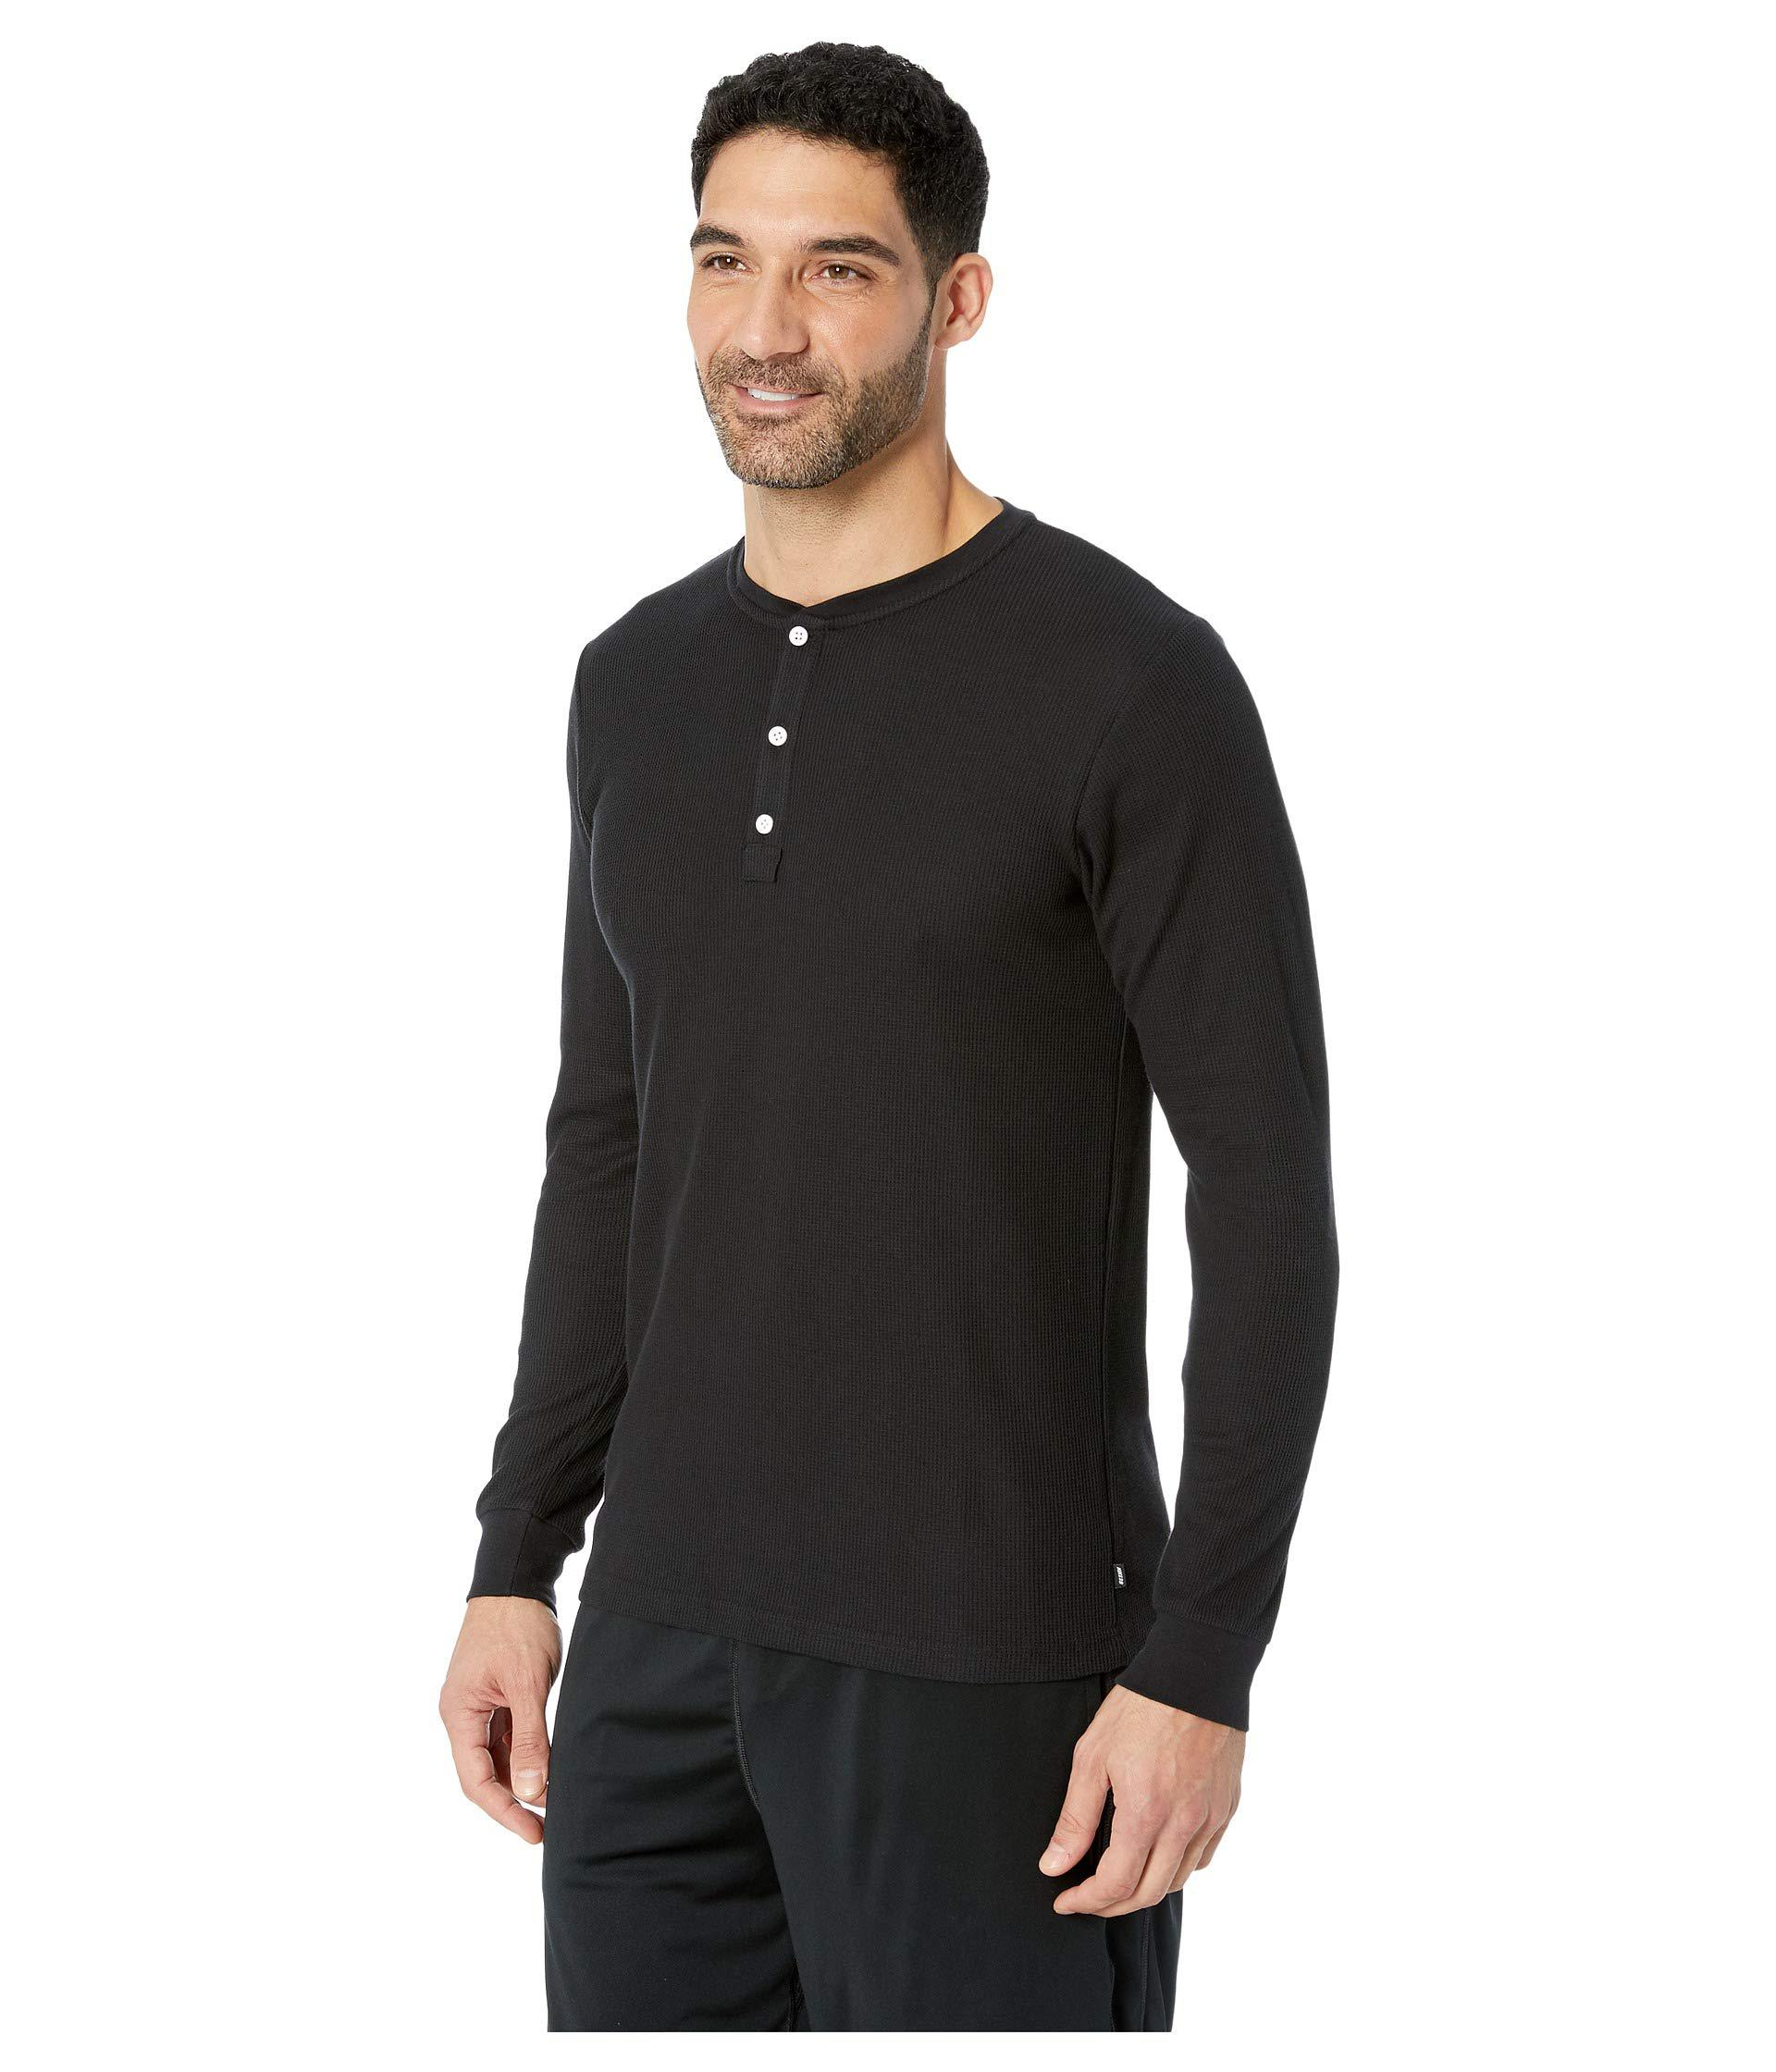 a53572af2edc Lyst - Nike Sb Thermal Henley Top in Black for Men - Save 33%